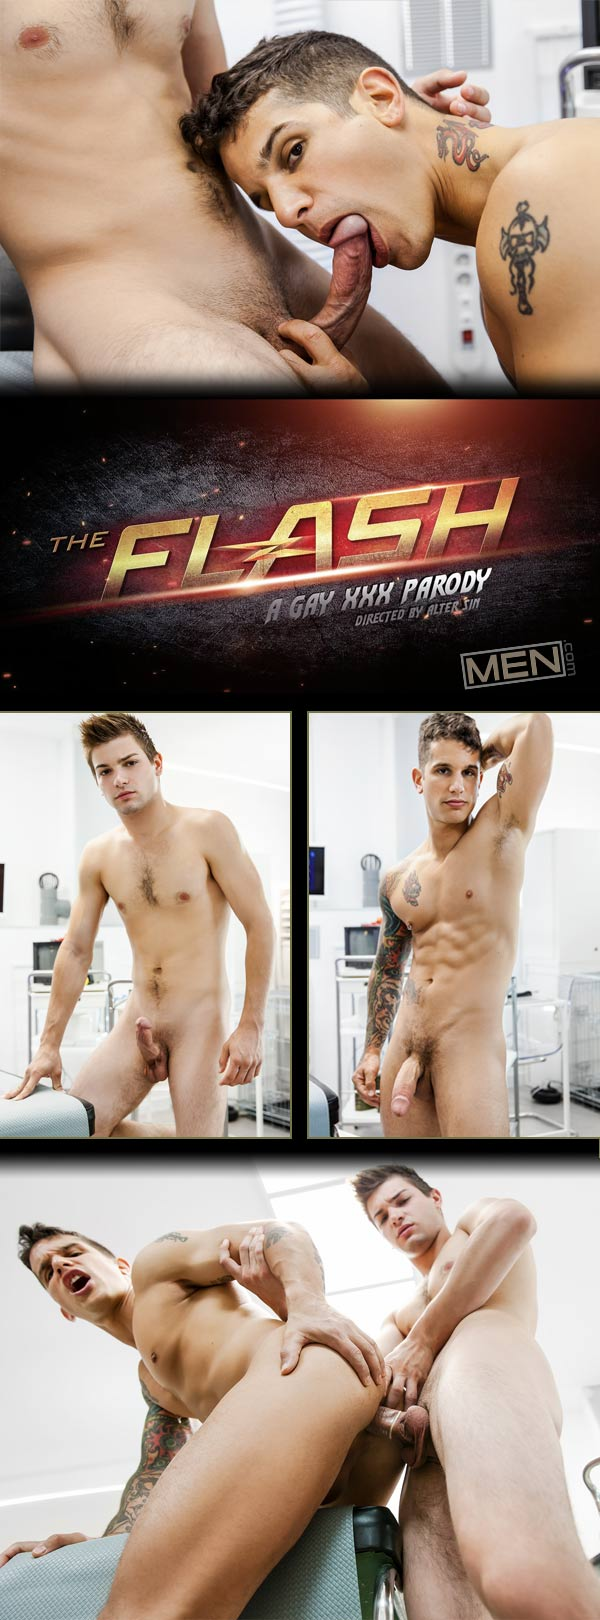 The Flash: A Gay XXX Parody (Johnny Rapid Fucks Pierre Fitch) (Part 2) at Men.com